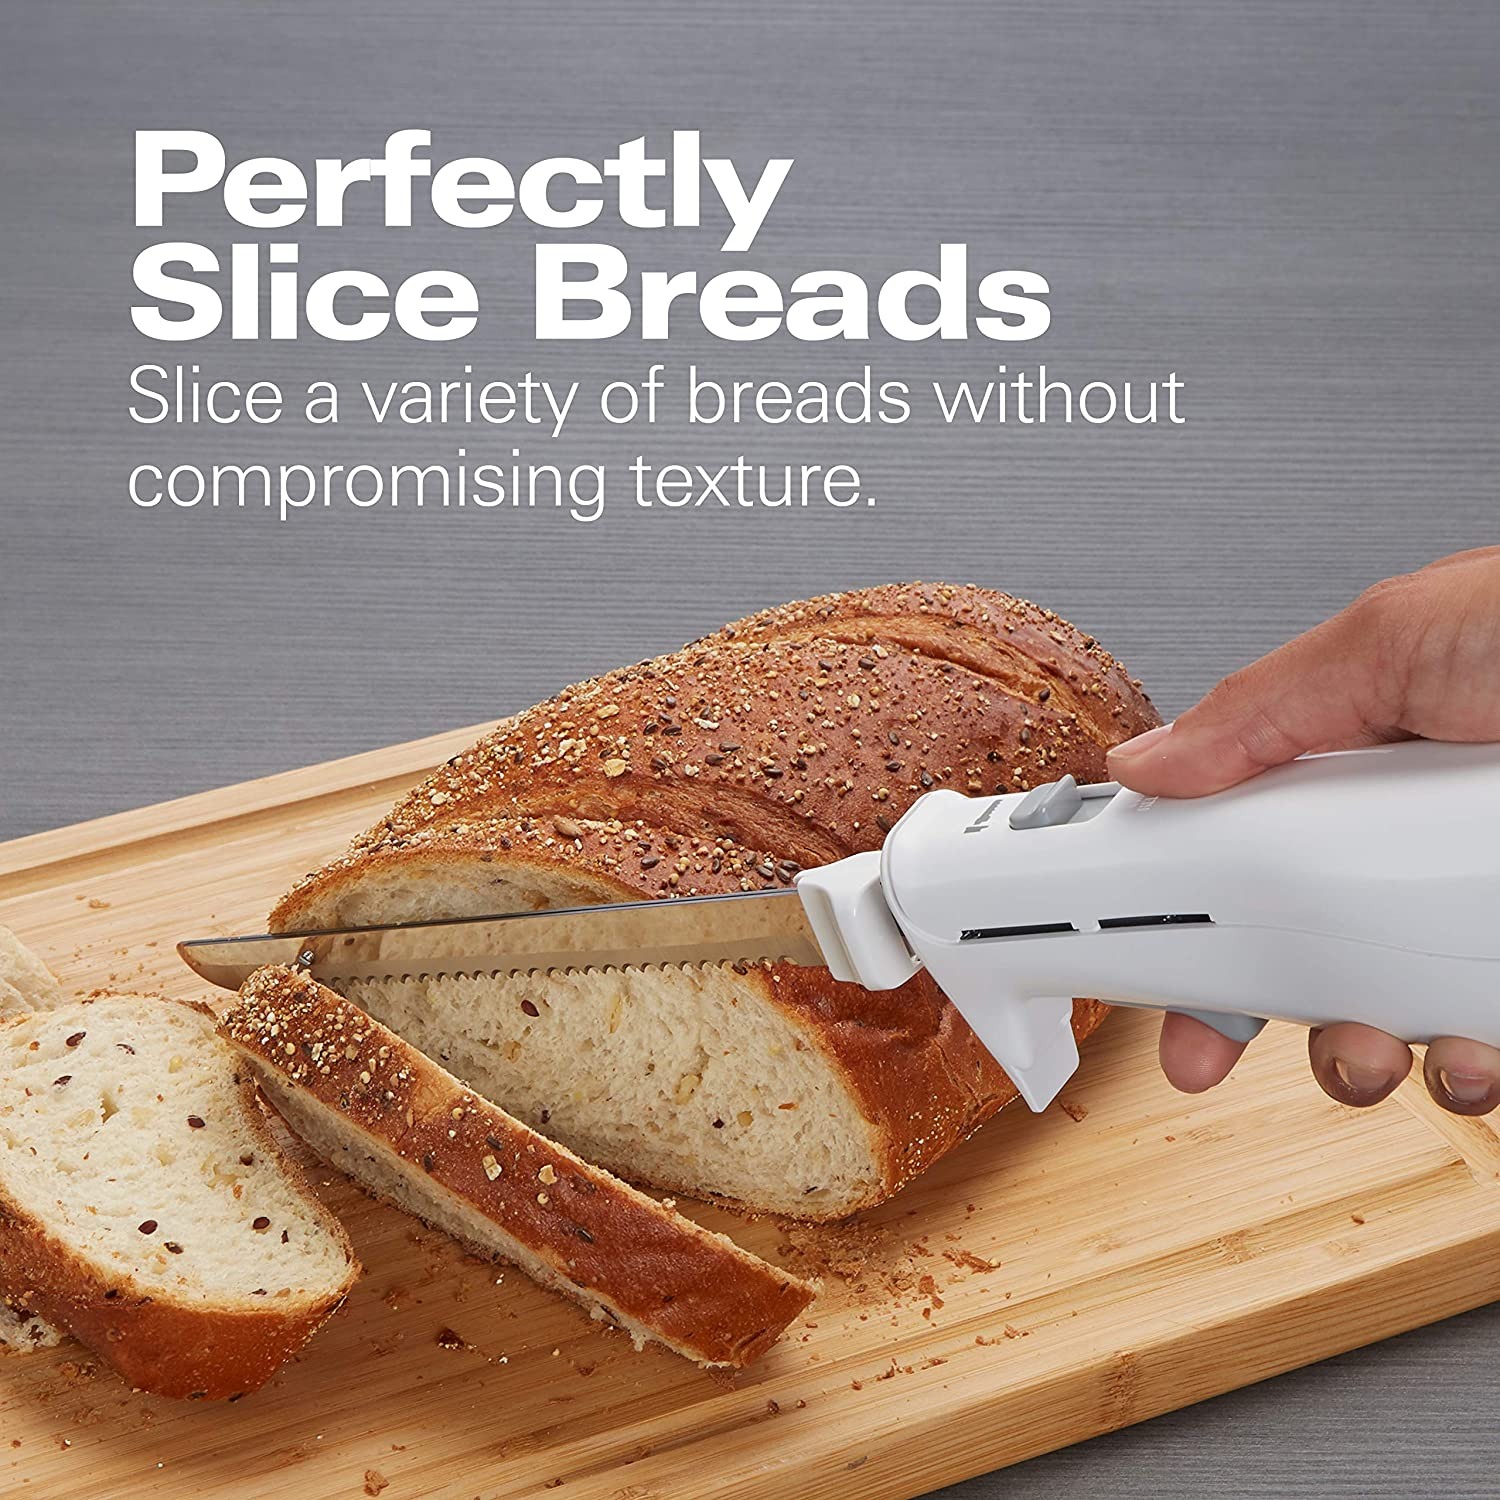 Hamilton Beach Electric Knife for Carving Meats, Poultry, Bread, Crafting Foam & More, Storage Case & Serving Fork Included, White (74250R)